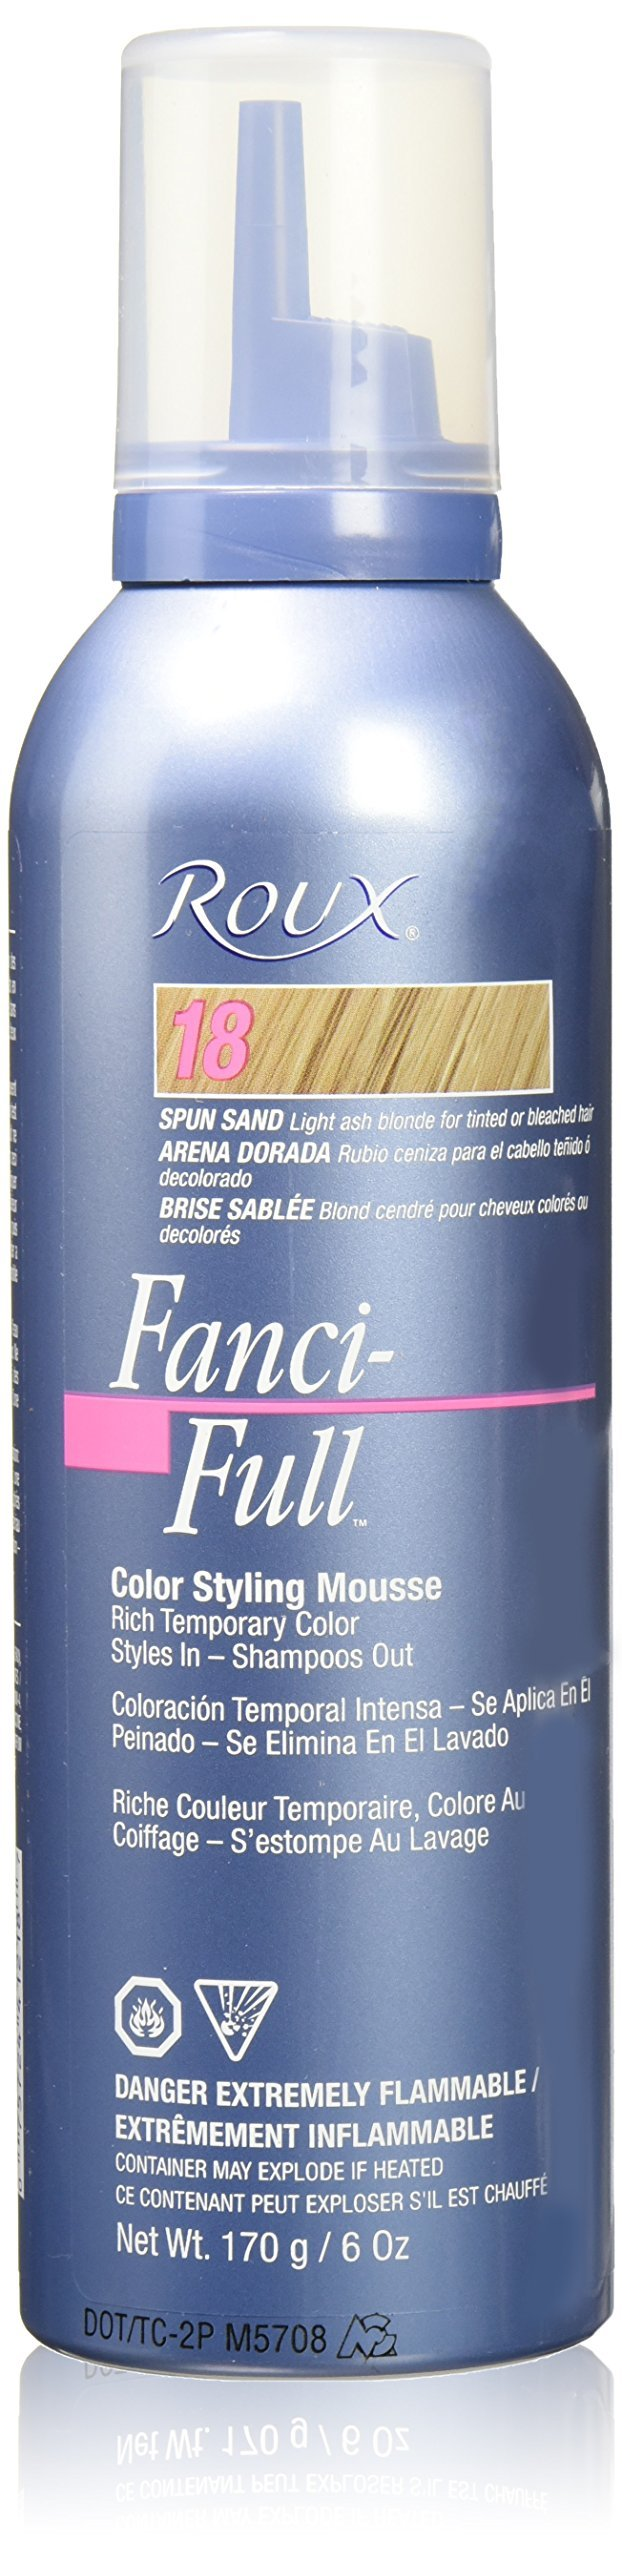 Roux Fanci-Full Mousse, 18 Spun Sand, 6 Fluid Ounce